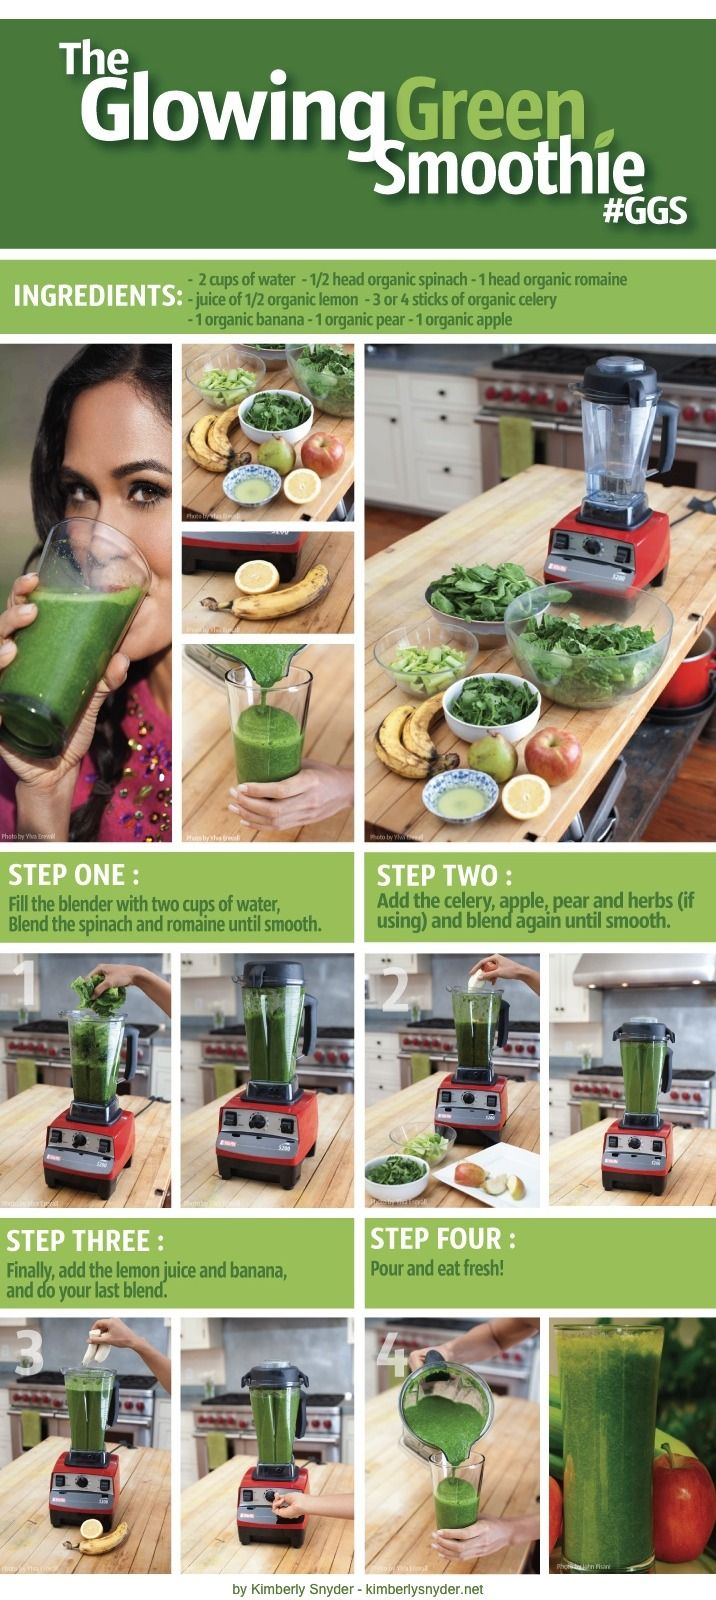 Green Smoothie... have to try